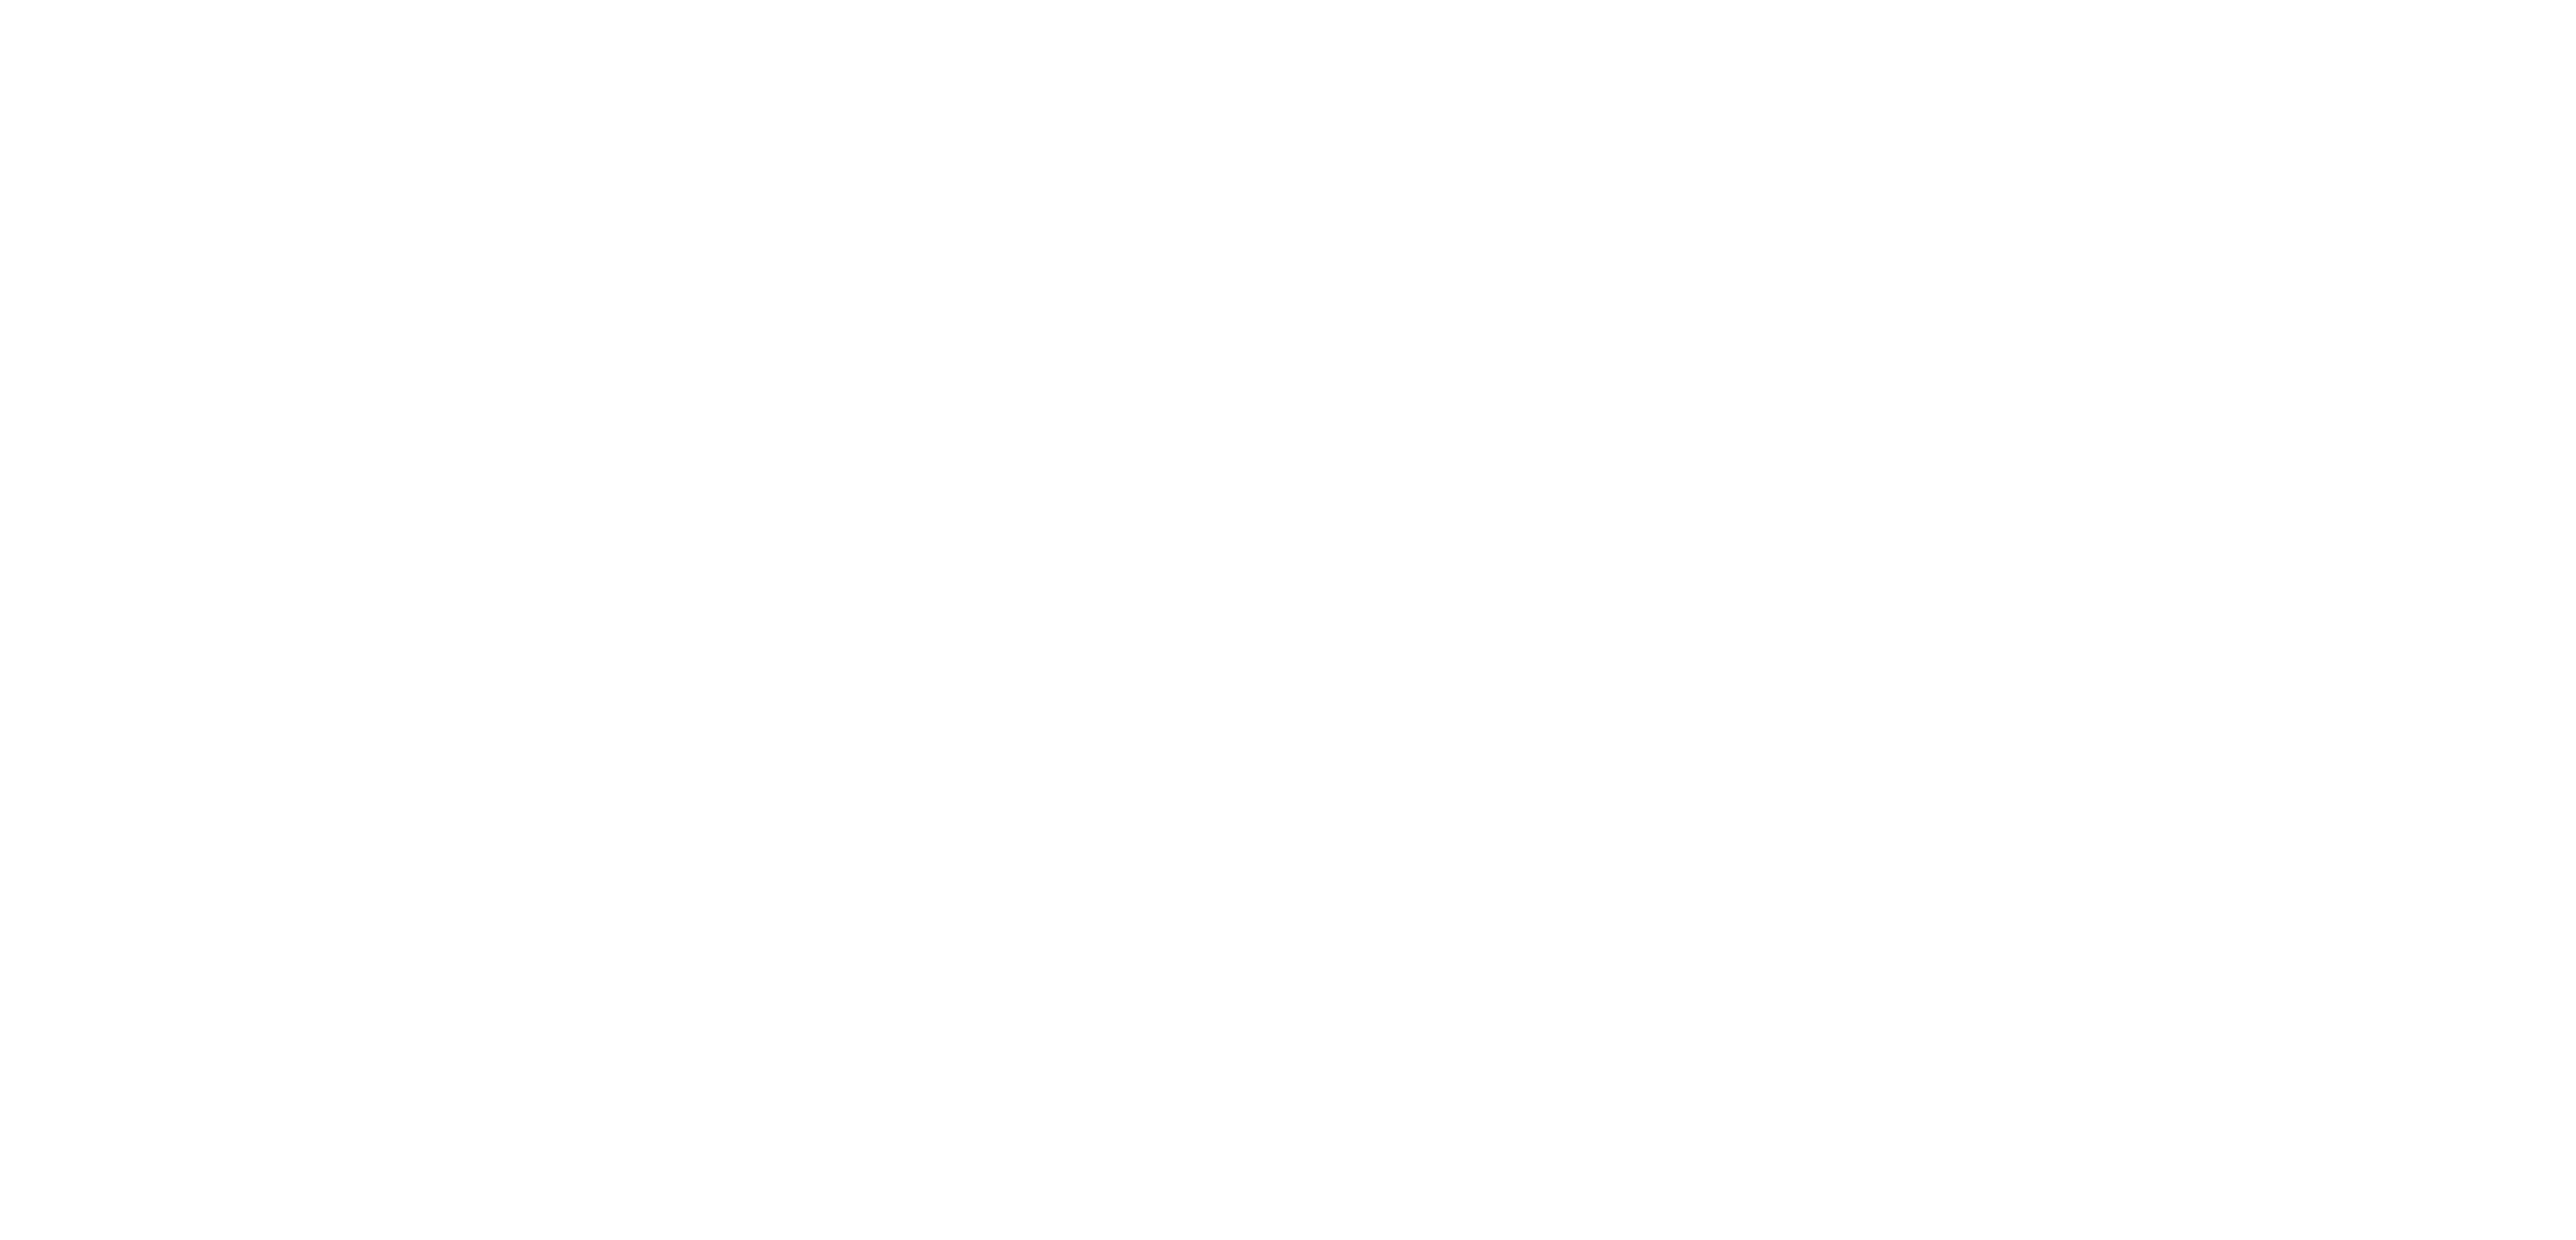 Cedar Lane Weddings